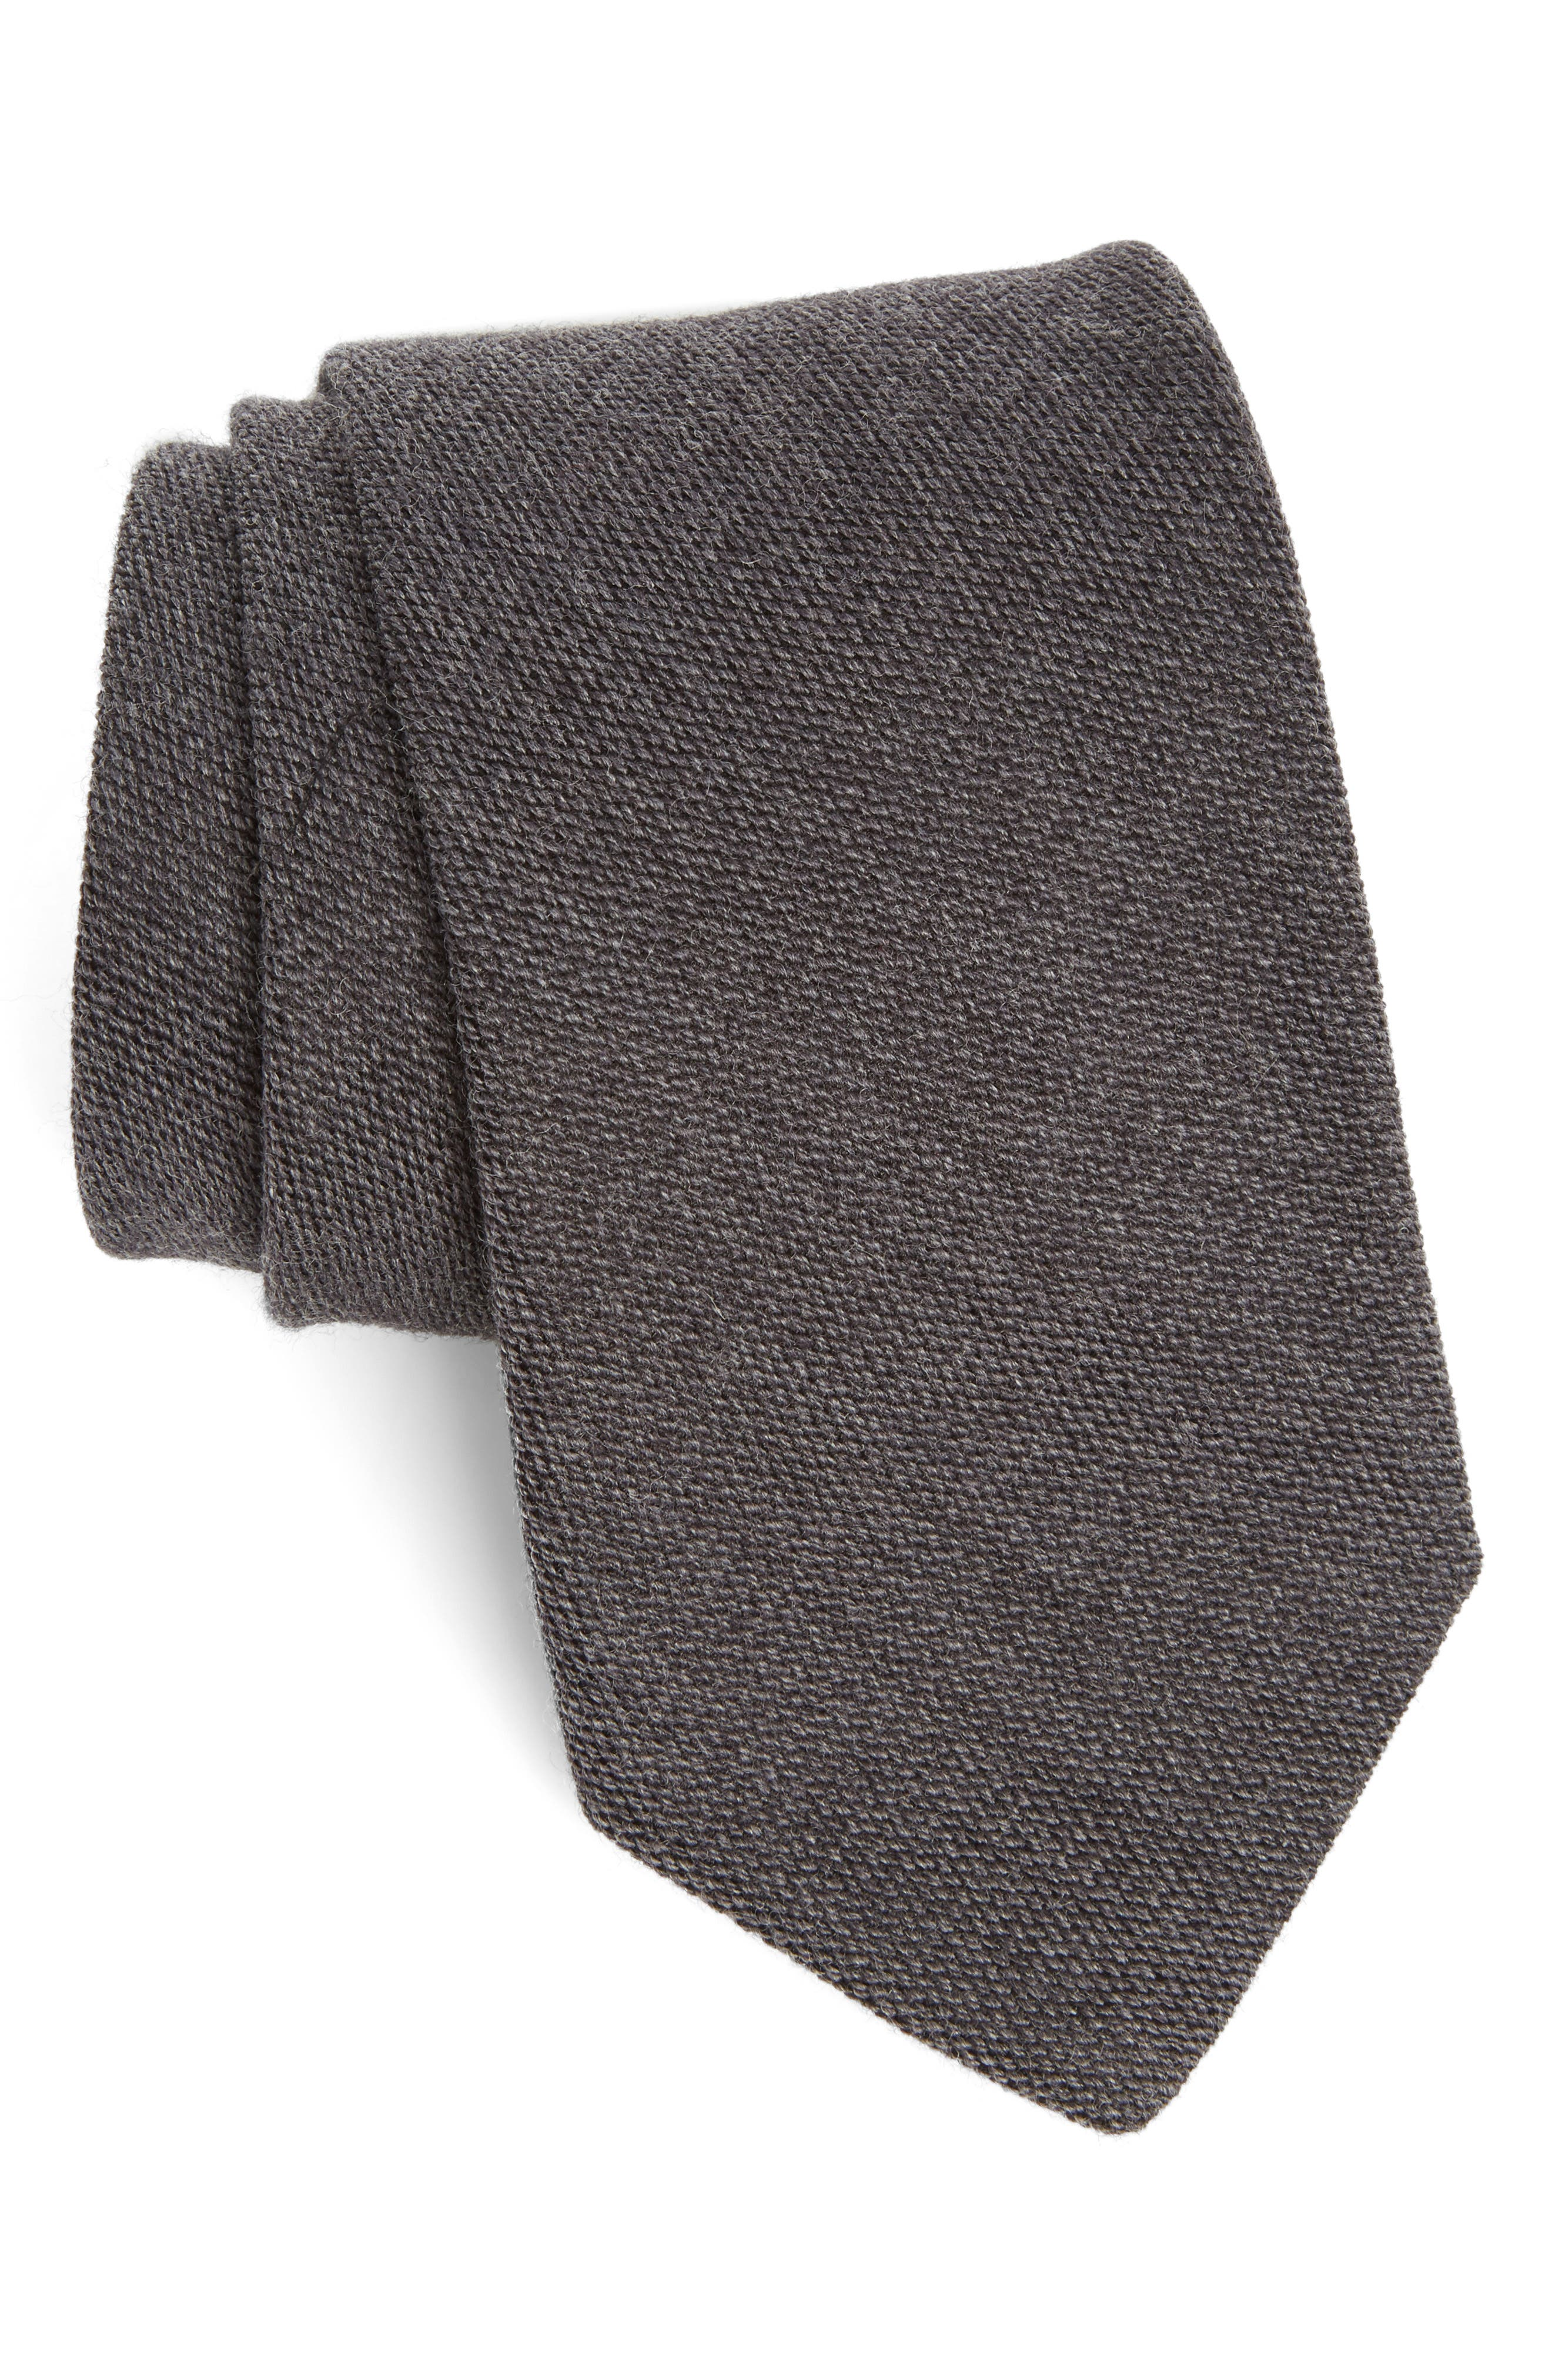 Alternate Image 1 Selected - Strong Suit Solid Mélange Silk & Wool Tie